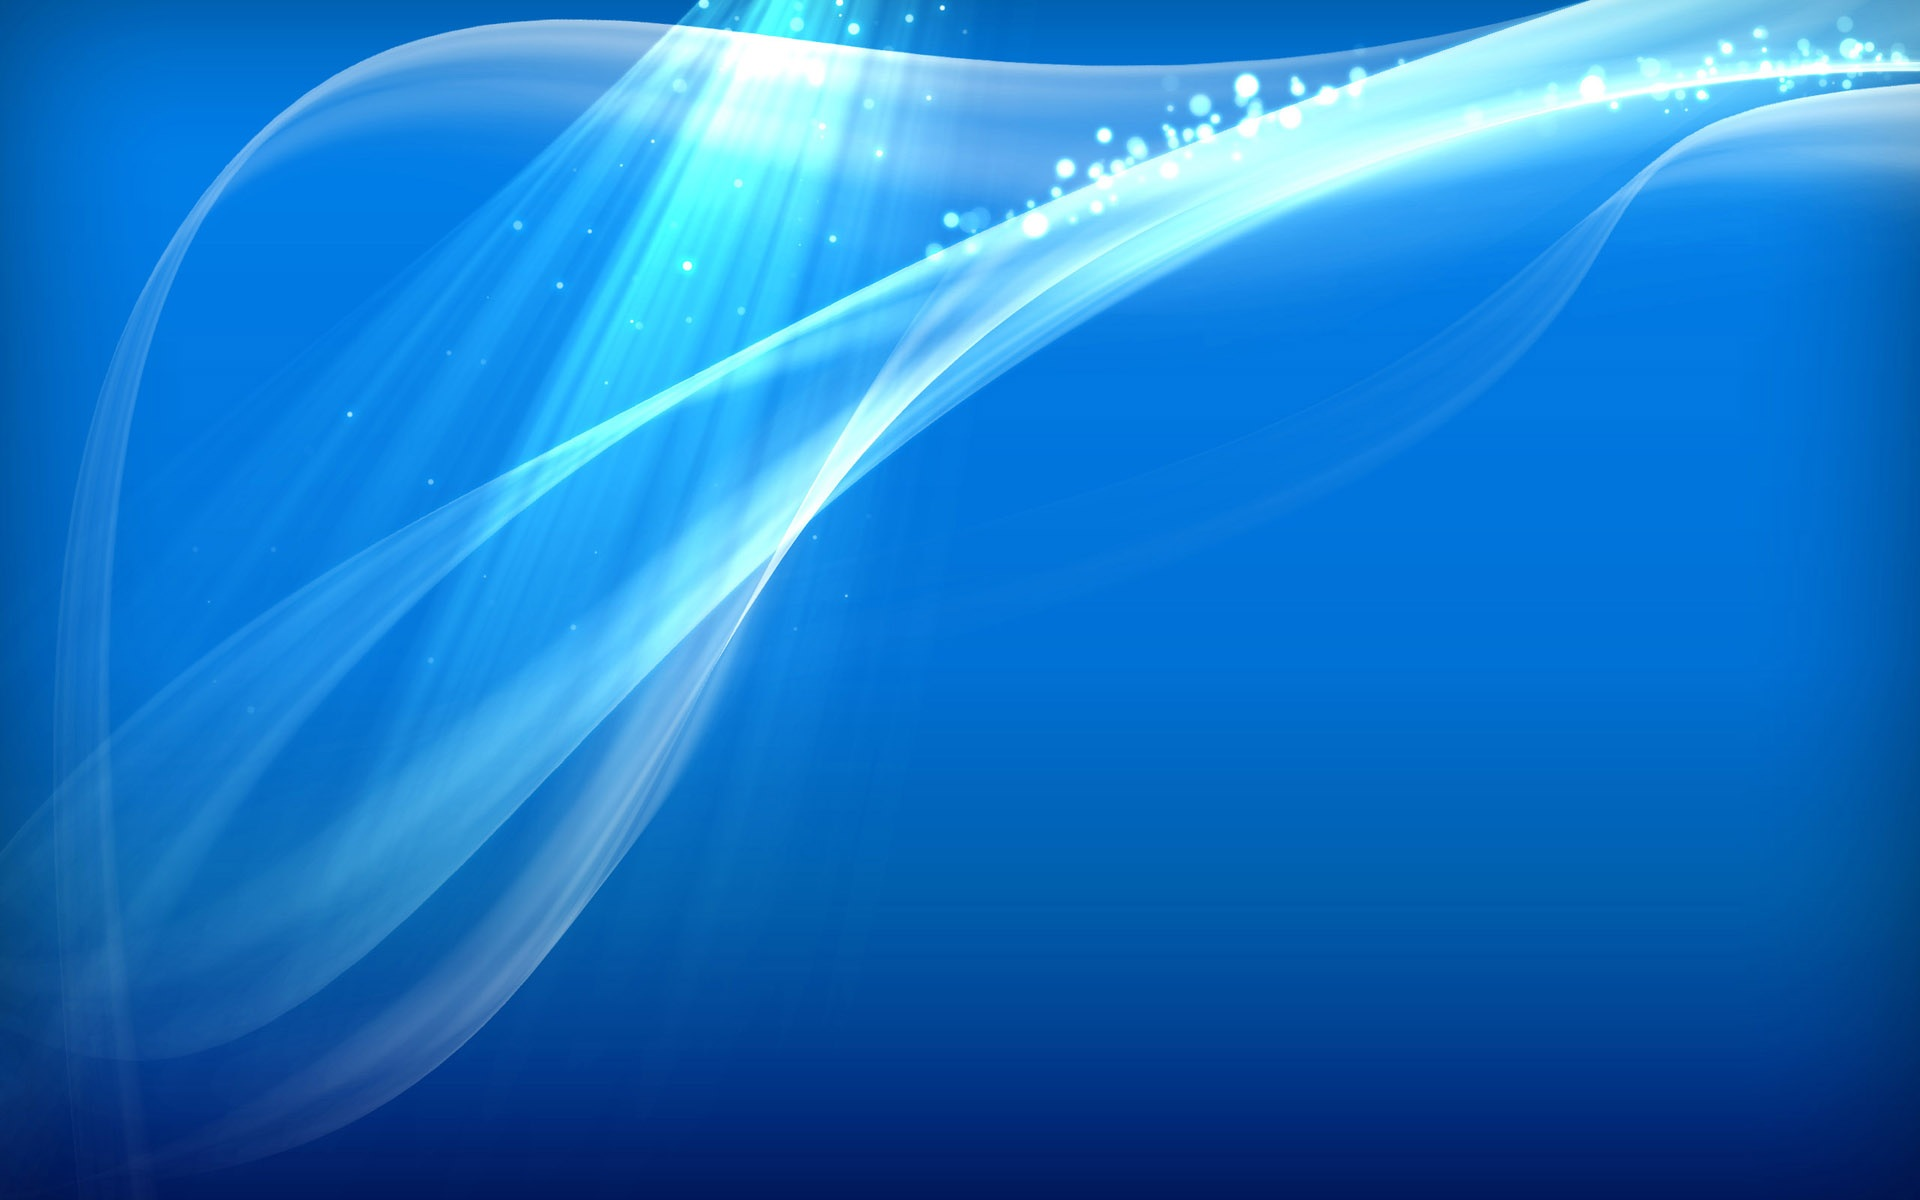 Blue Background Abstract Wallpapers HD 1920x1200